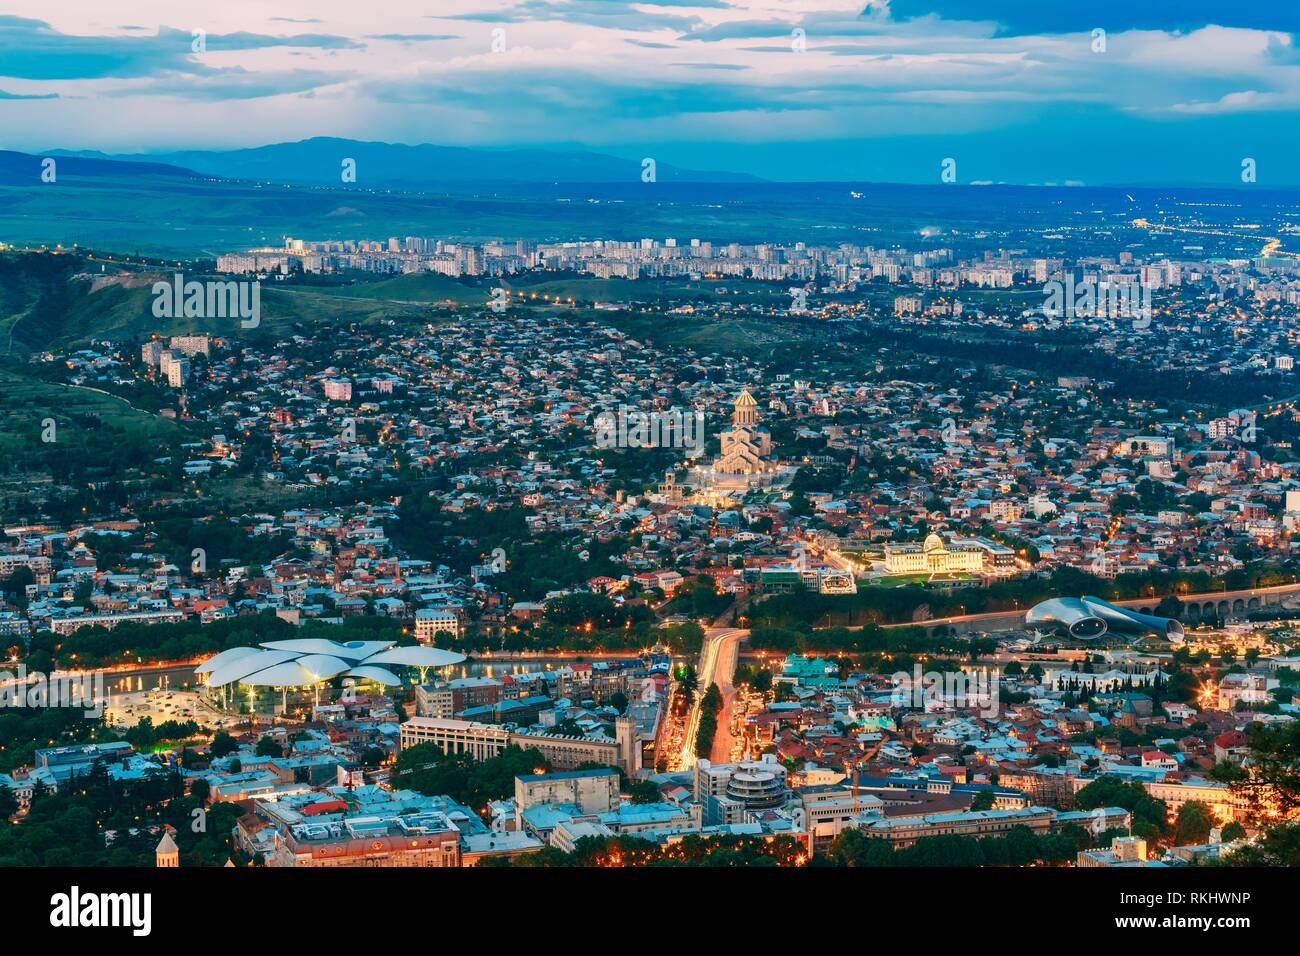 Tbilisi, Georgia. Evening Scenic Aerial Cityscape With All Famous Landmarks In Bright Illumination In Summer Twilight, Blue Cloudy Sky Under Dark Stock Photo